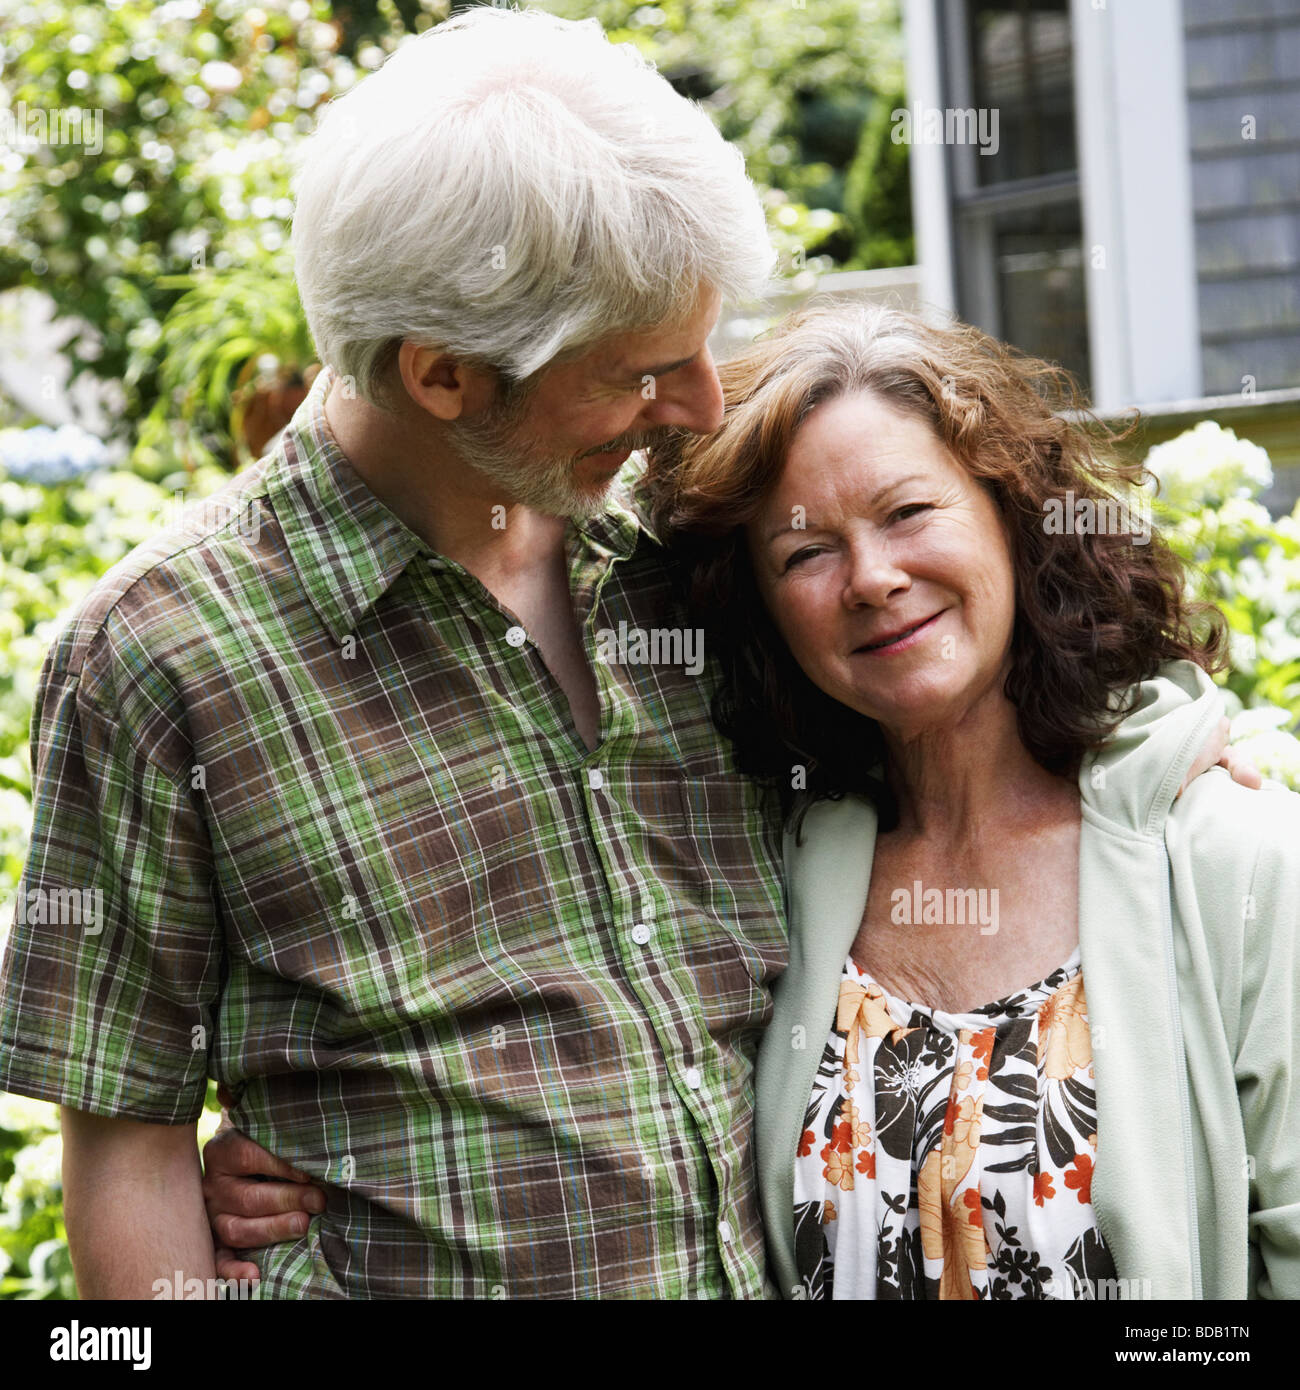 Mature couple smiling with arm around - Stock Image